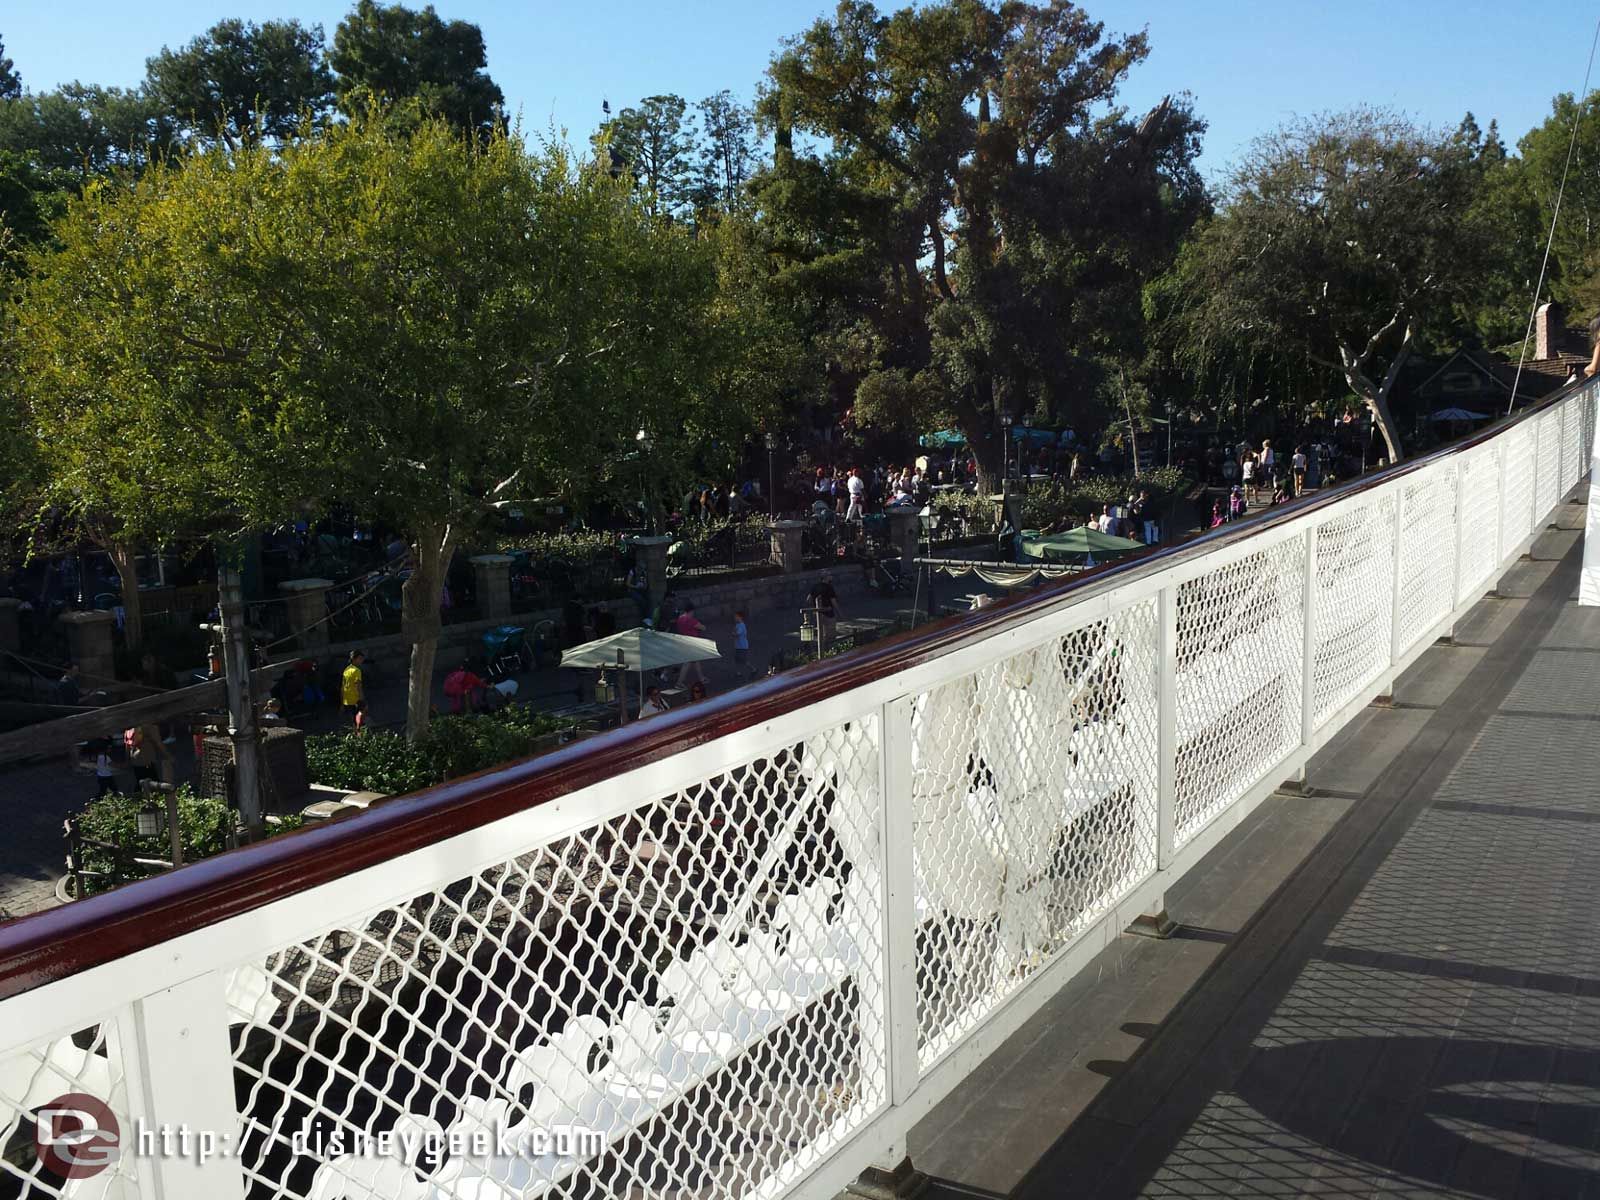 Onboard the Mark Twain looks like new again #Disneyland